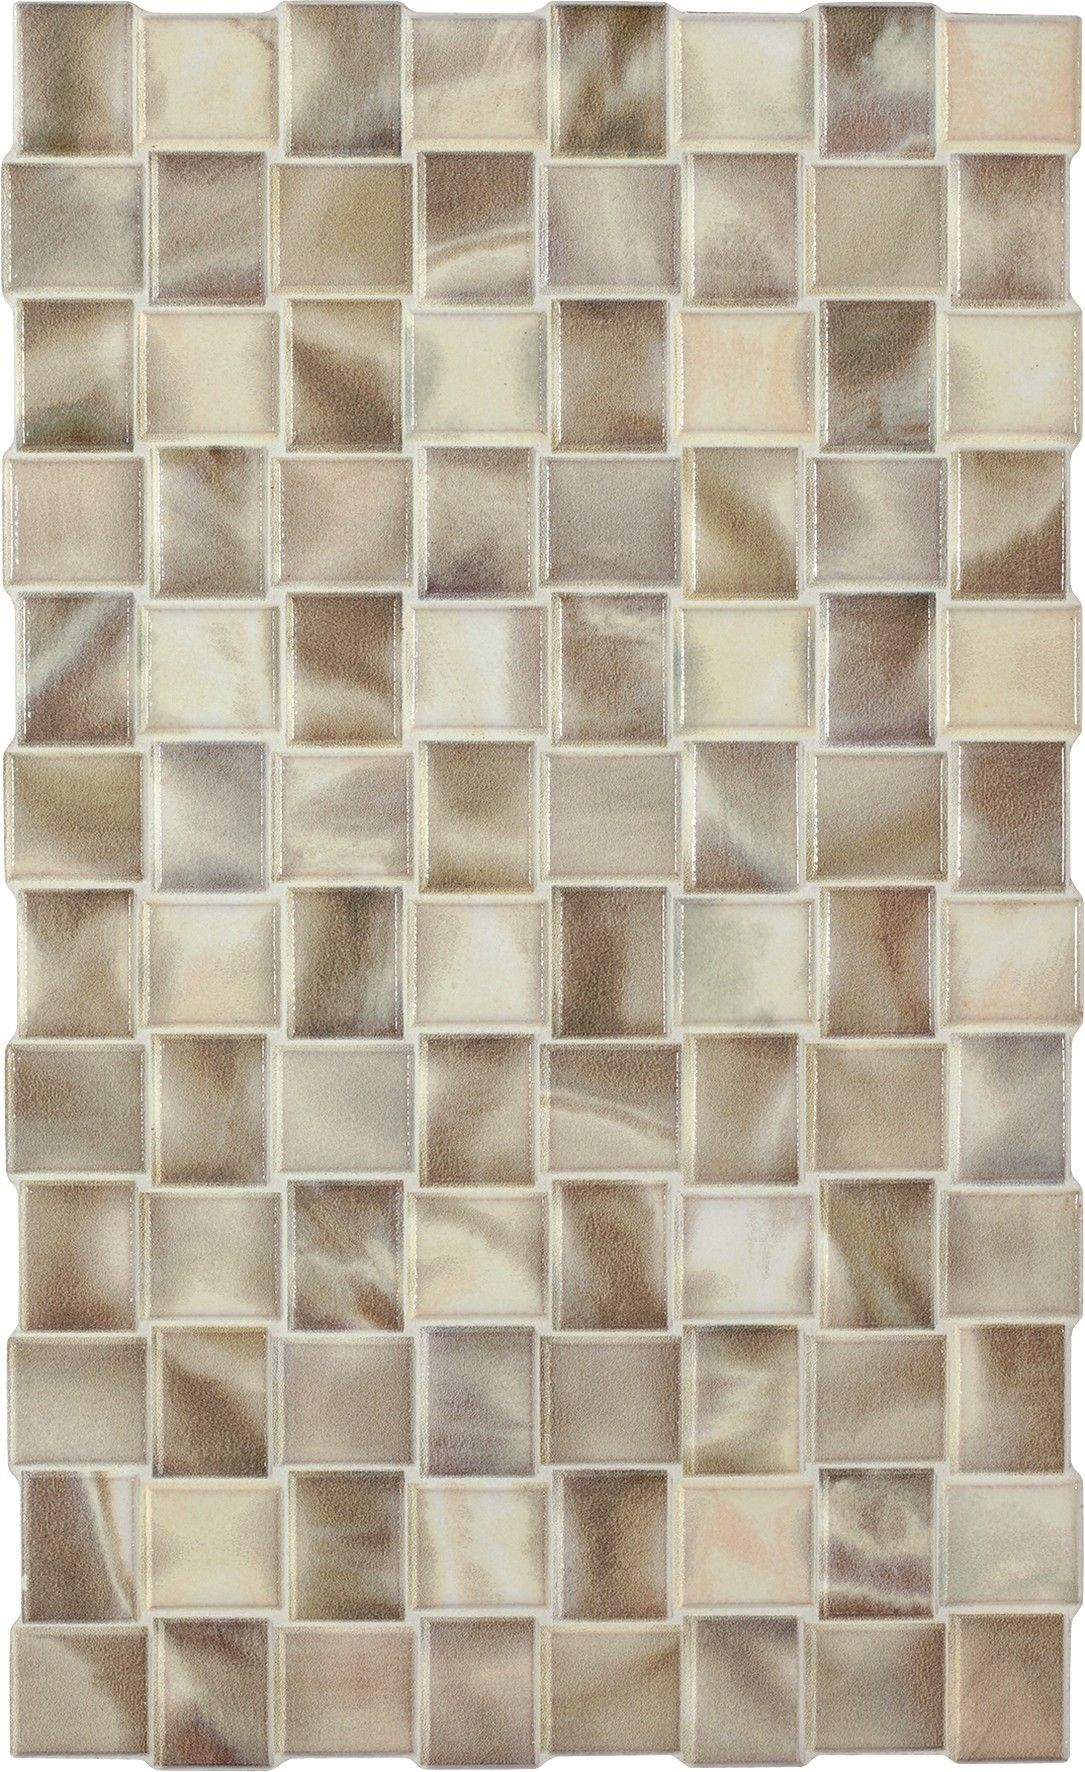 Dado tango beige 20x333 cm 302722 feinsteinzeug steinoptik available on all the flooring by dado notte brava at the best price guaranteed discover dado tango beige cm 302722 stone effect with all its features dailygadgetfo Images